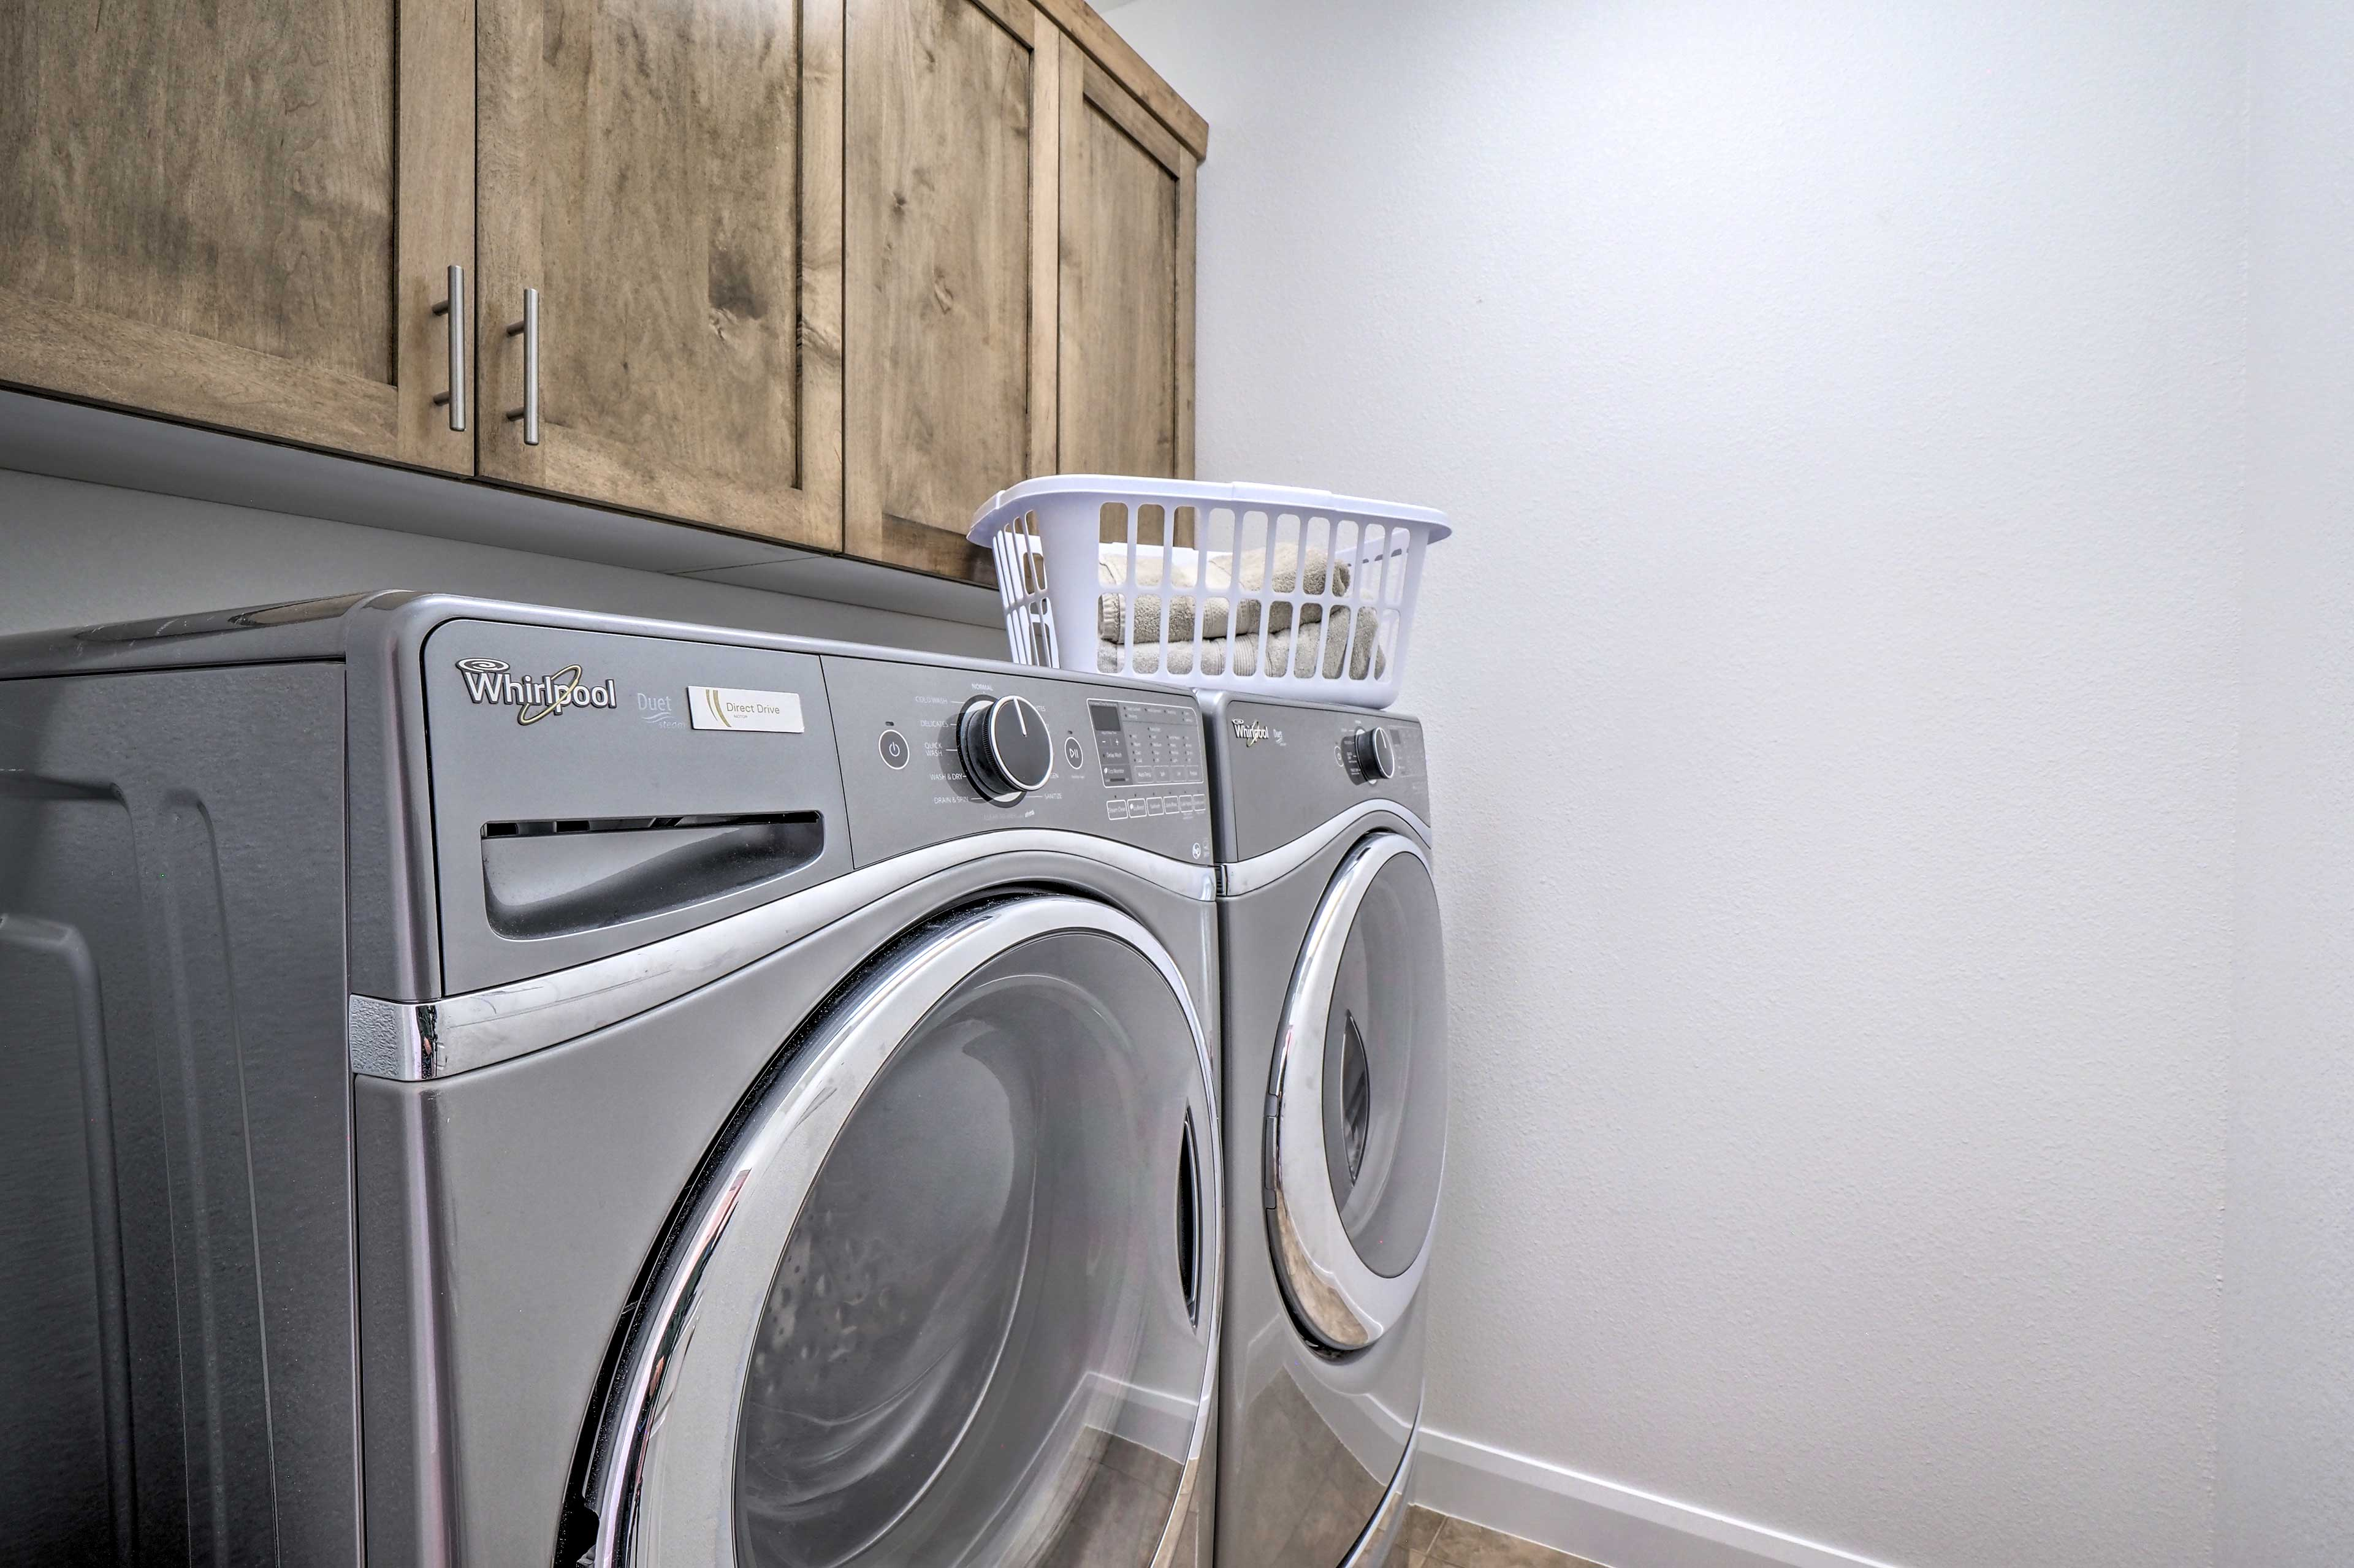 Keep your clothes smelling fresh with the washer/dryer.